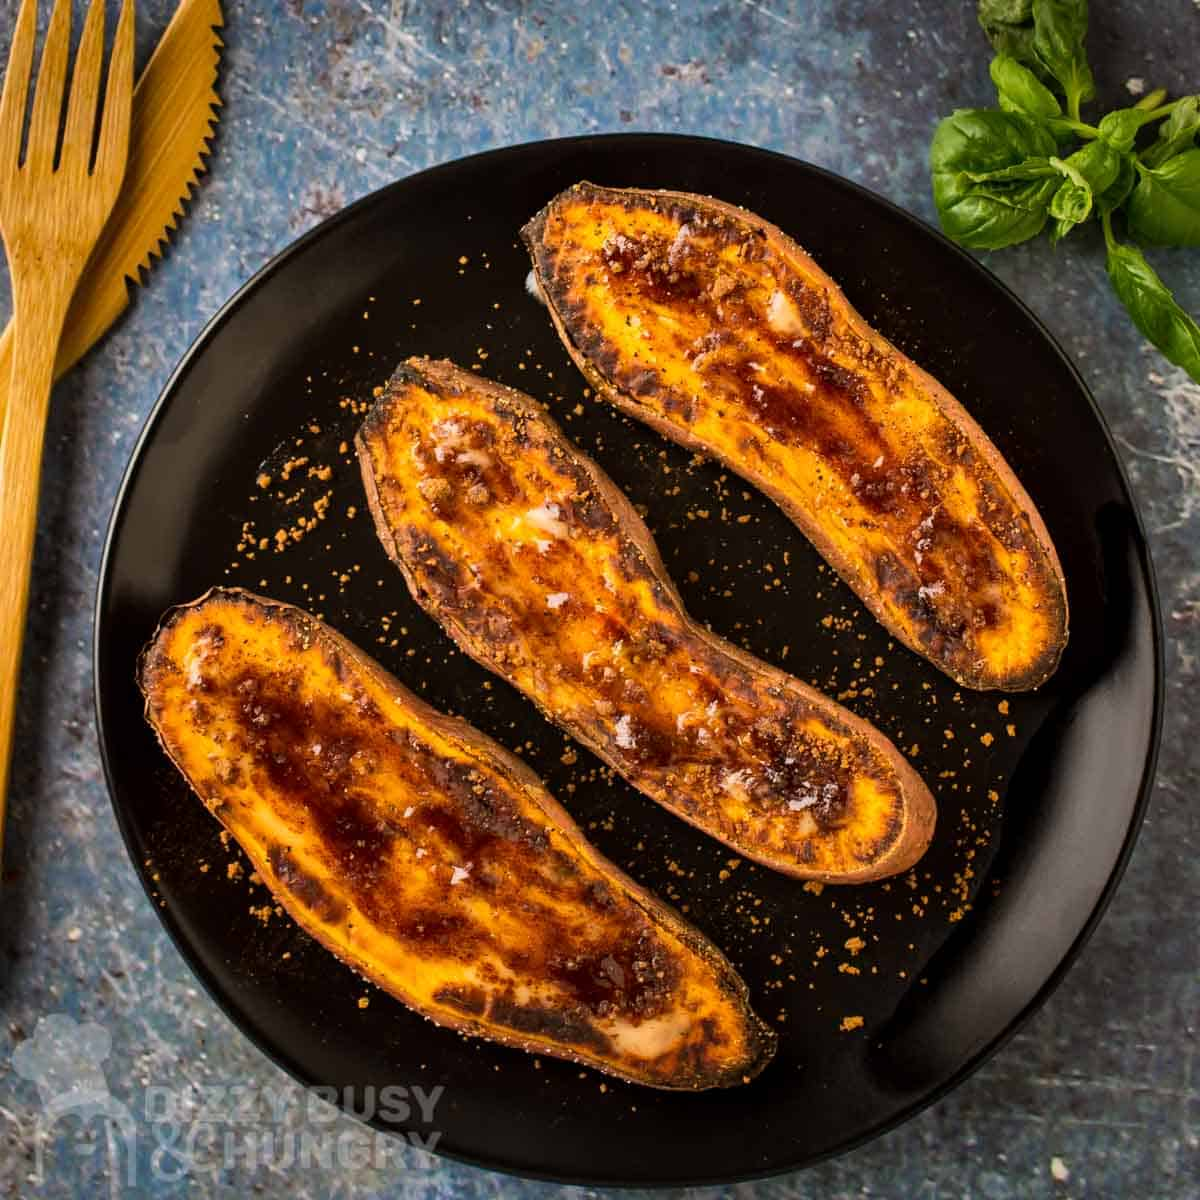 Overhead view of 3 sweet potato halves on a black plate topped with butter and a brown sugar cinnamon mixture.